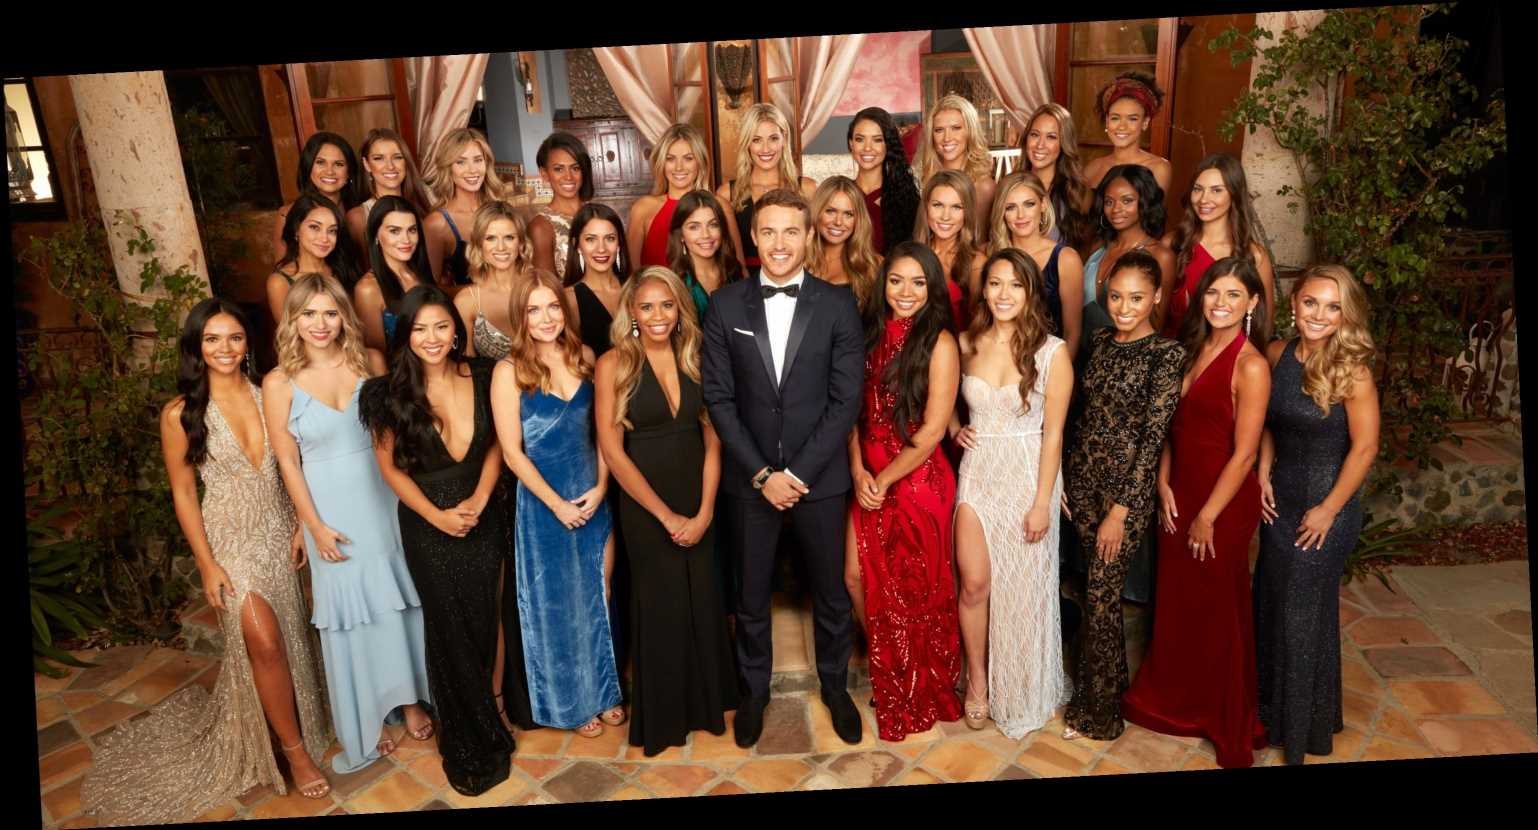 'The' Bachelor Is Airing Two Episodes on Two Different Days Next Week